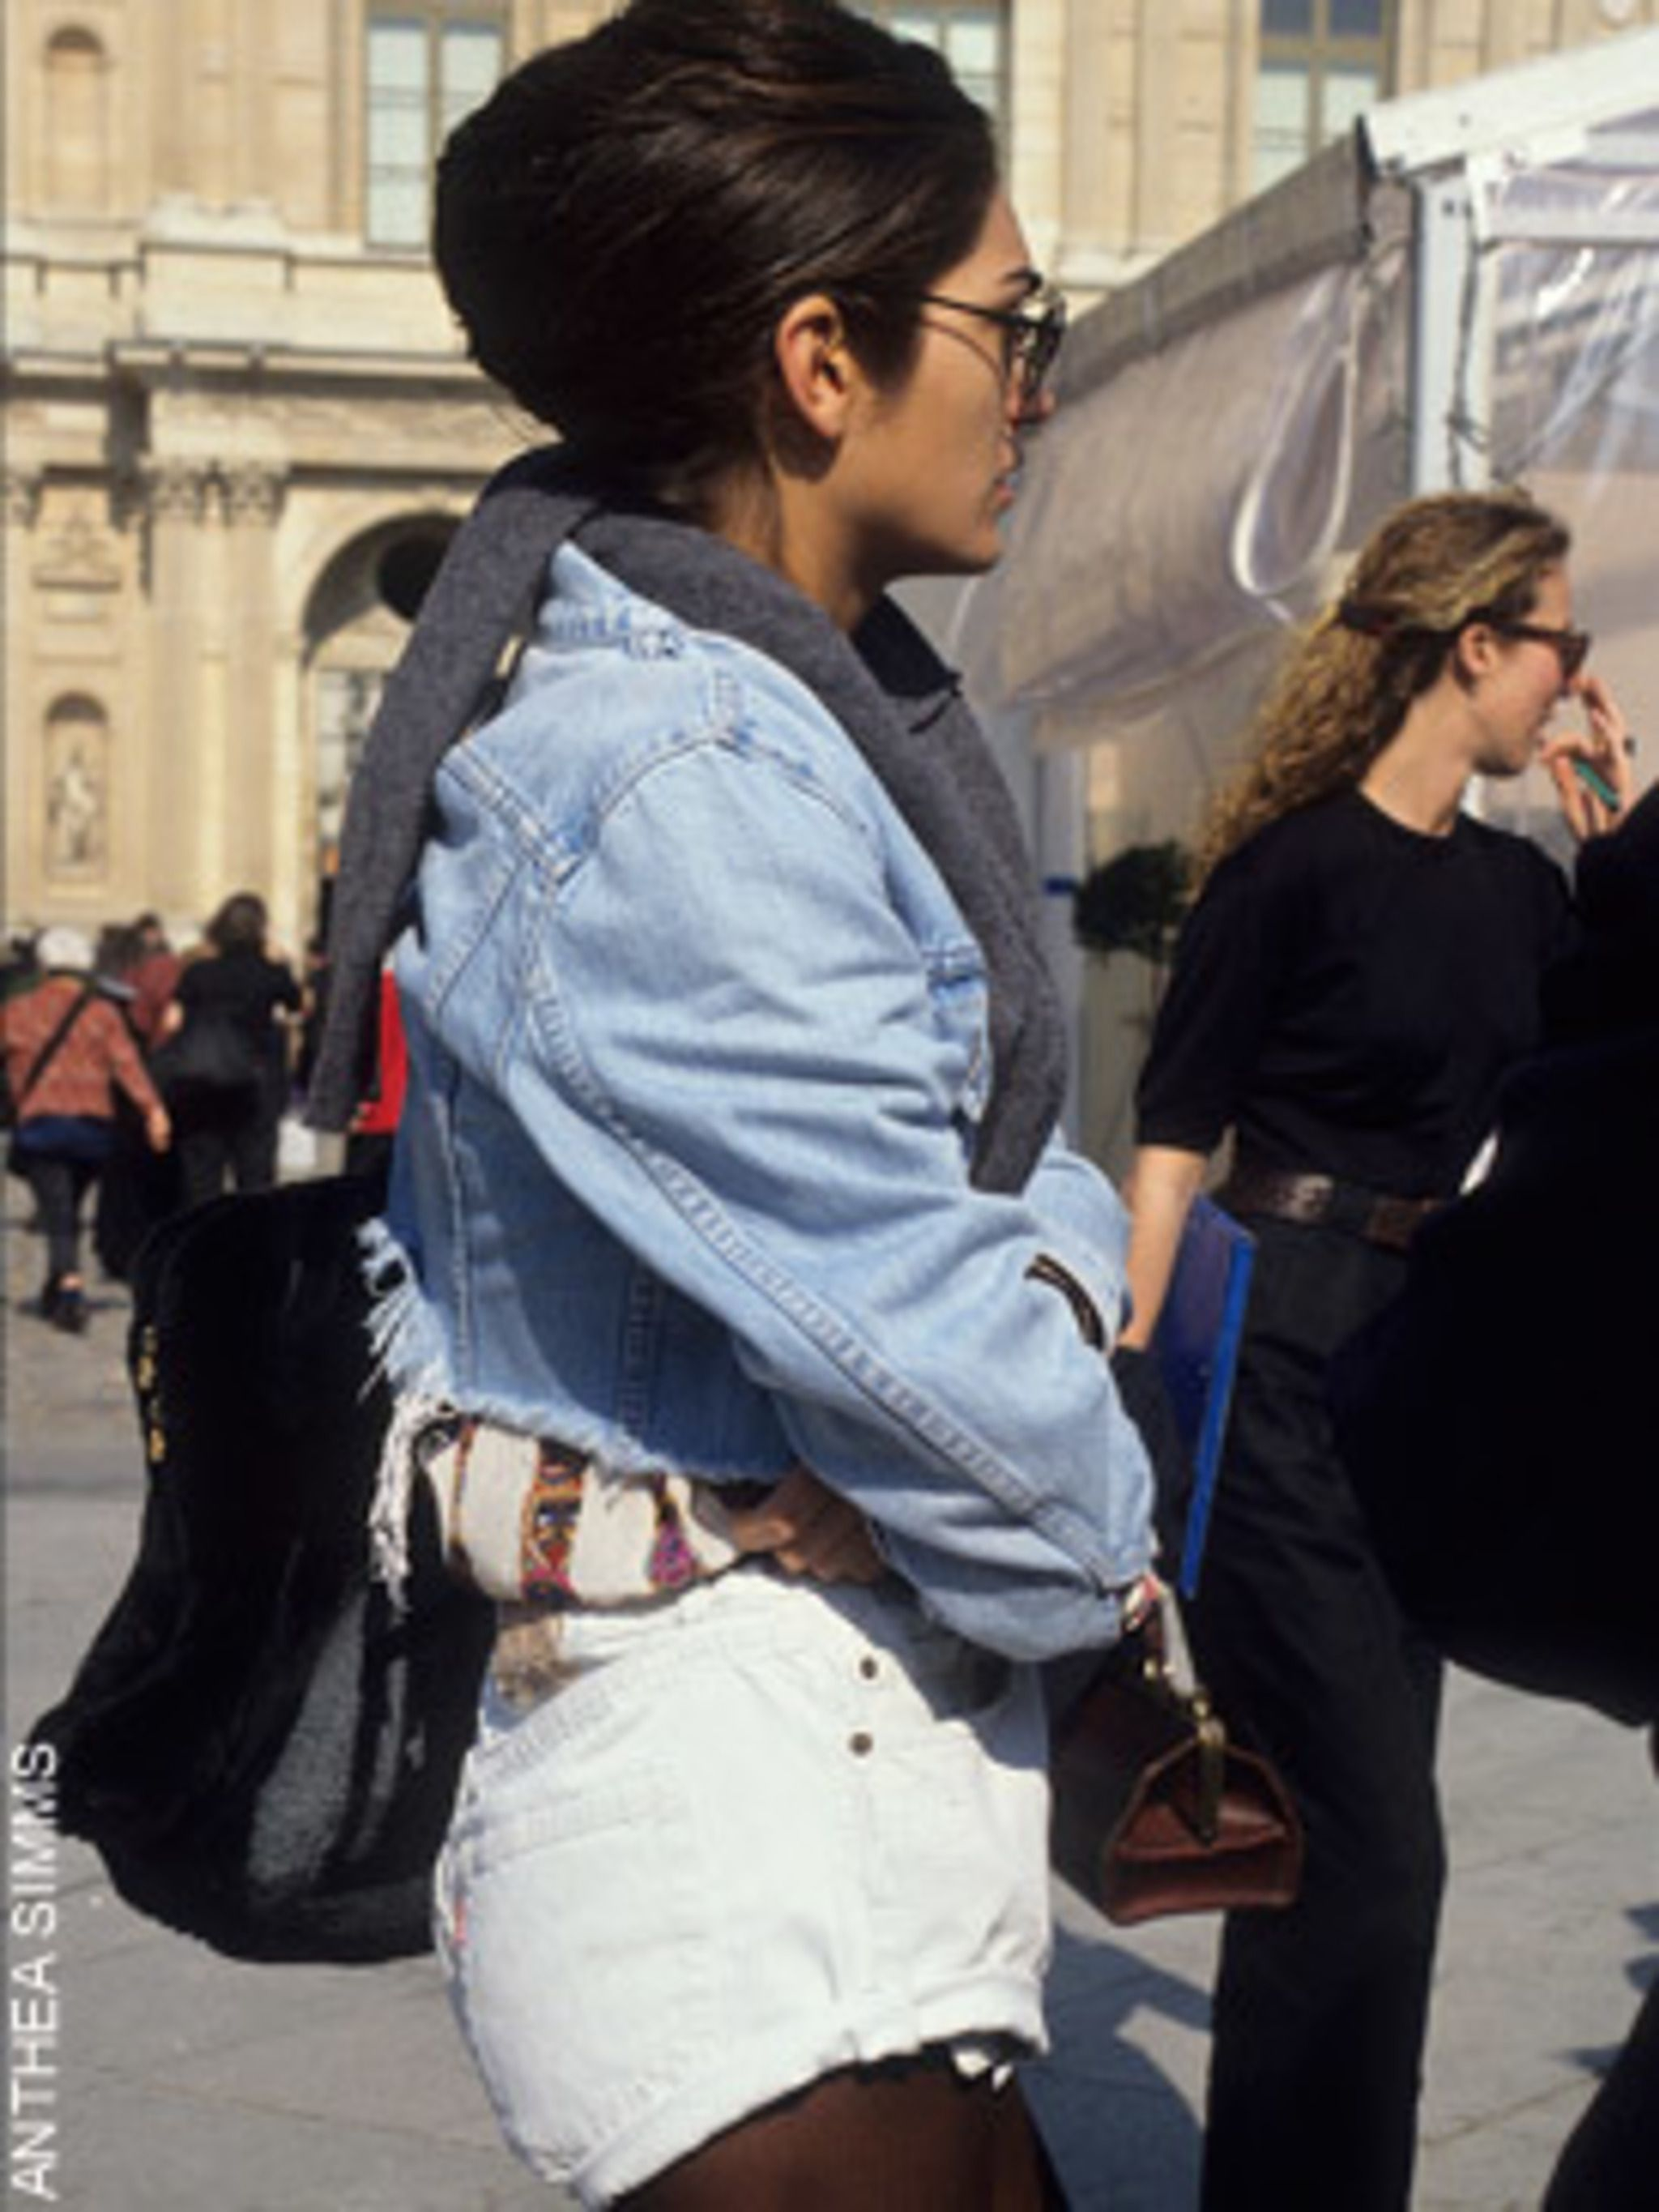 "<p> High waisted, faded <a href=""http://www.elleuk.com/starstyle/celebrity-trends/%28section%29/everyone-s-wearing-denim-shorts2"">denim shorts</a> have been ubiquitous at this summer's festivals and in the capital of late. Back then, they were worn with c"